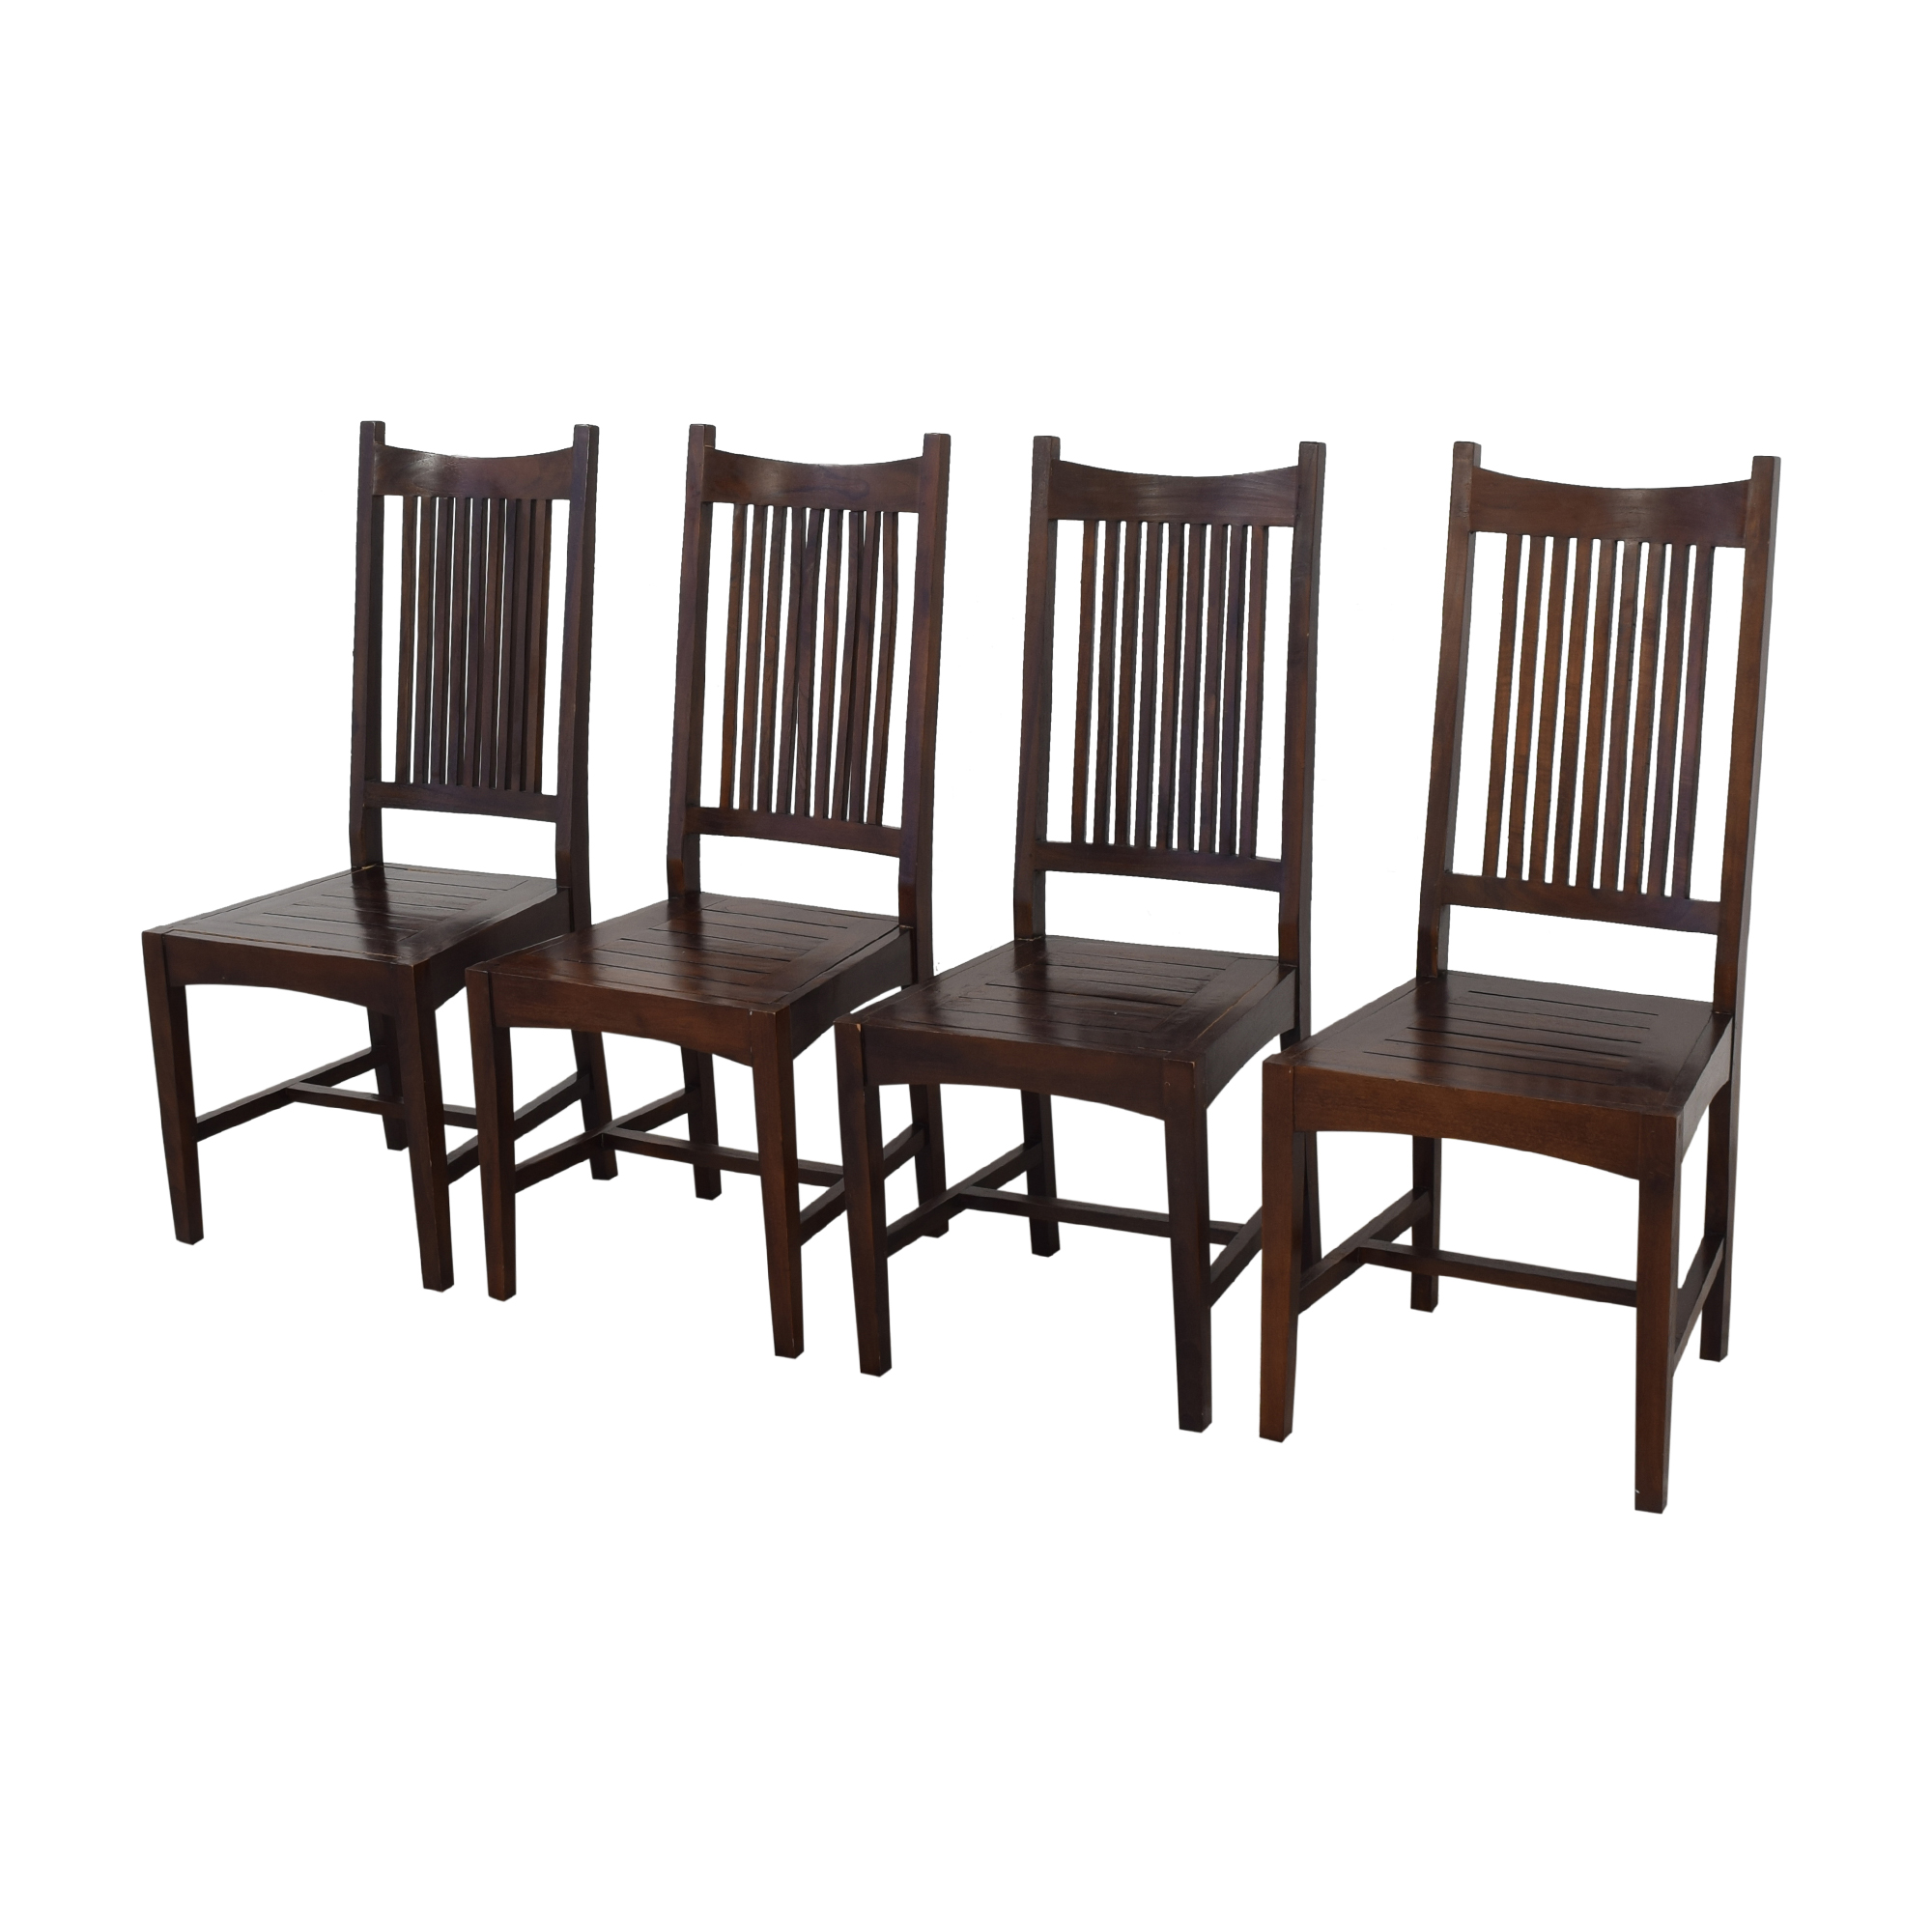 High Back Dining Chairs dimensions